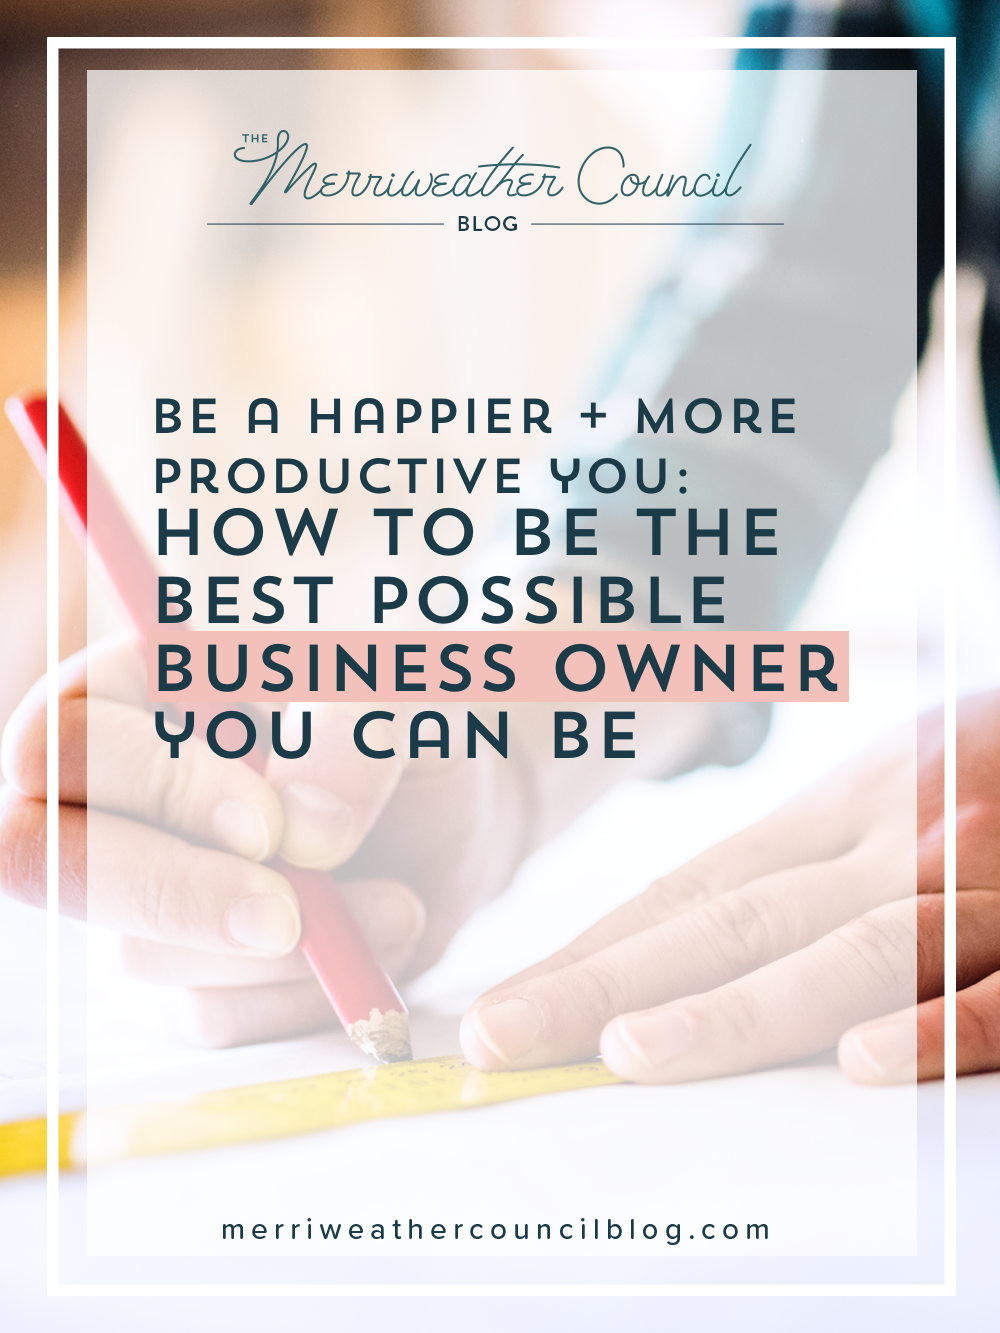 When you are able to be the best you, you can be a productive business owner. How can you stop being deflated-you and get back to being creative-you? Stop putting more work on yourself, save more time, and join The Council to learn how to be a productive business owner. | The Merriweather Council